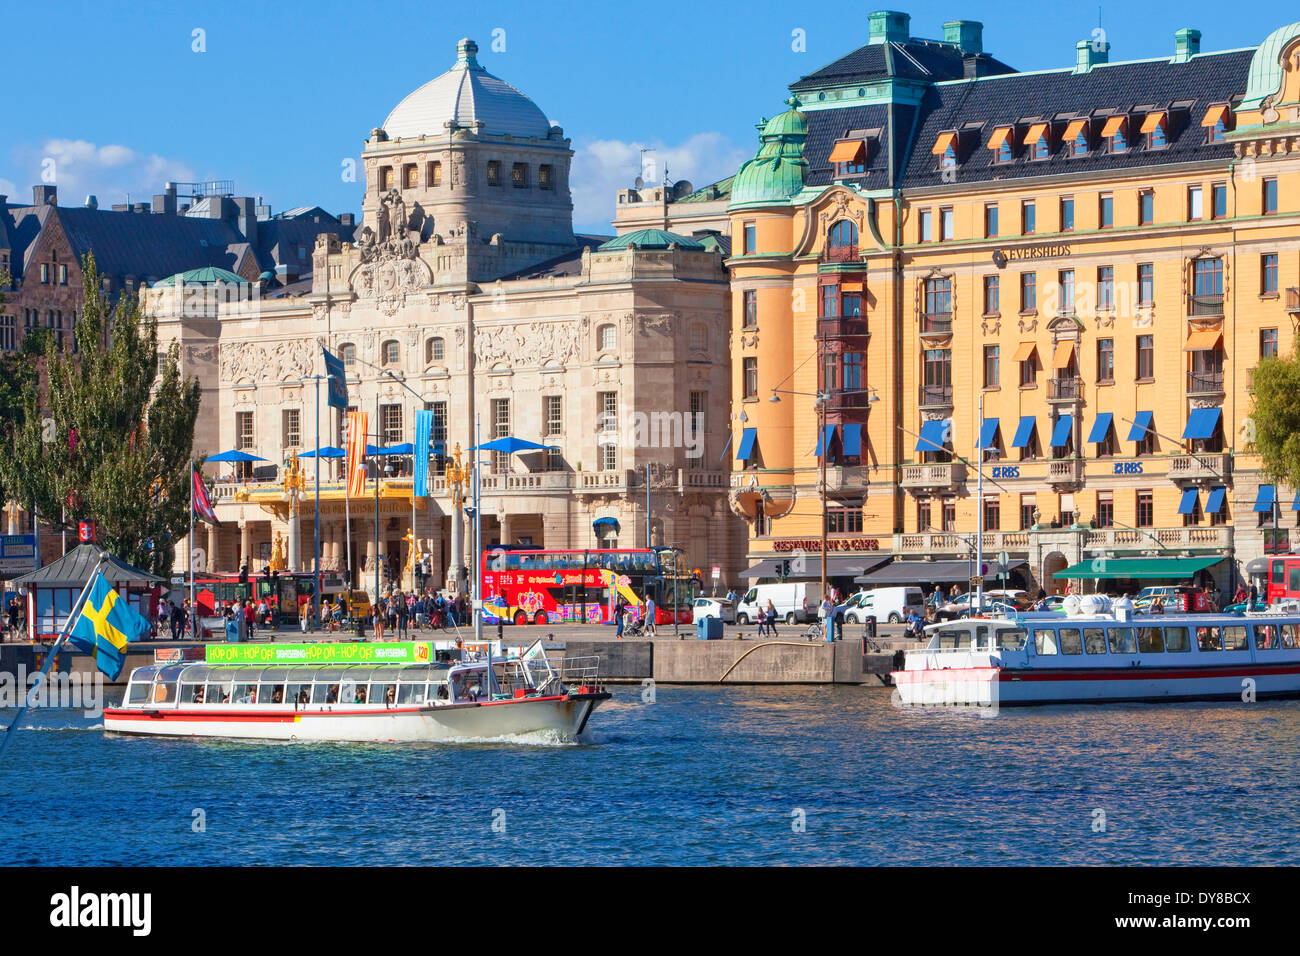 boat capital cities city day Dramaten Europe ferry flag harbour Nordic Nybroviken outdoors people Royal Dramatic - Stock Image